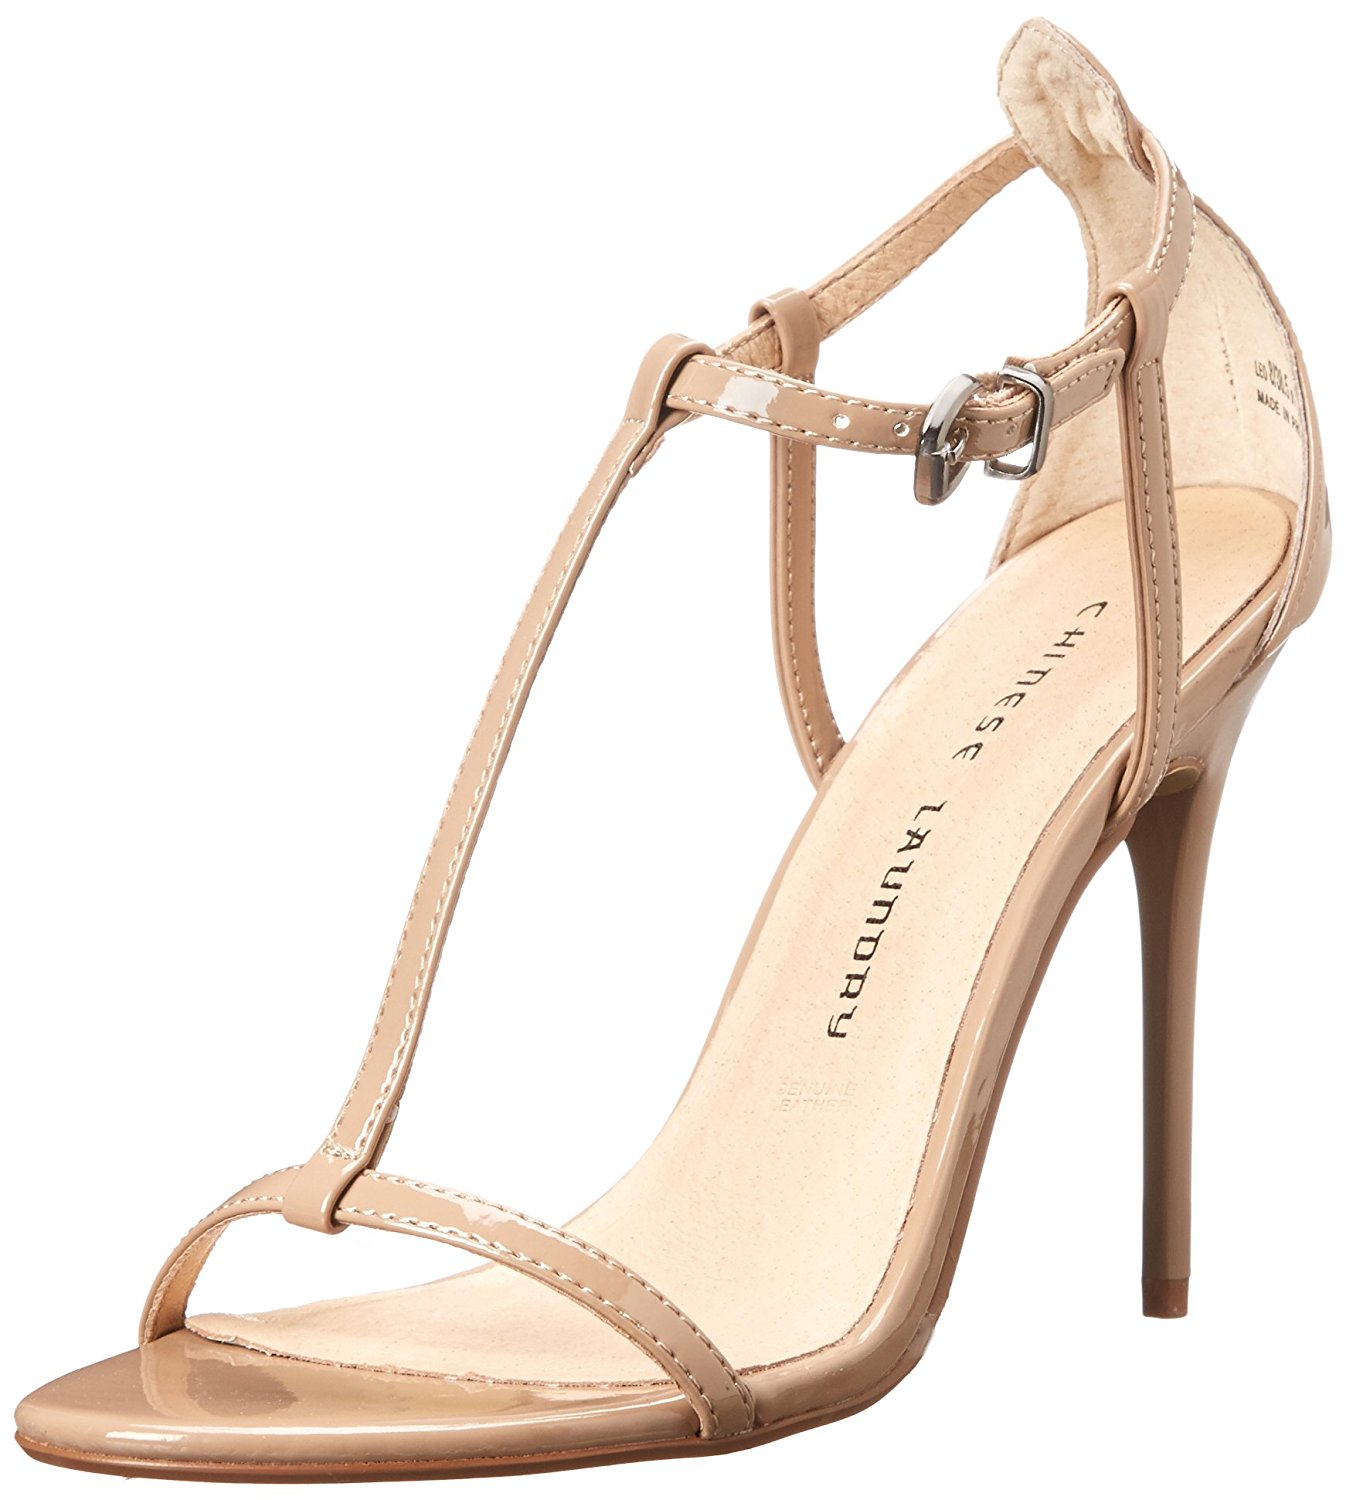 Chinese Laundry Womens Leo Open Toe Ankle Strap Classic Pumps Nude Size 8.5 Od